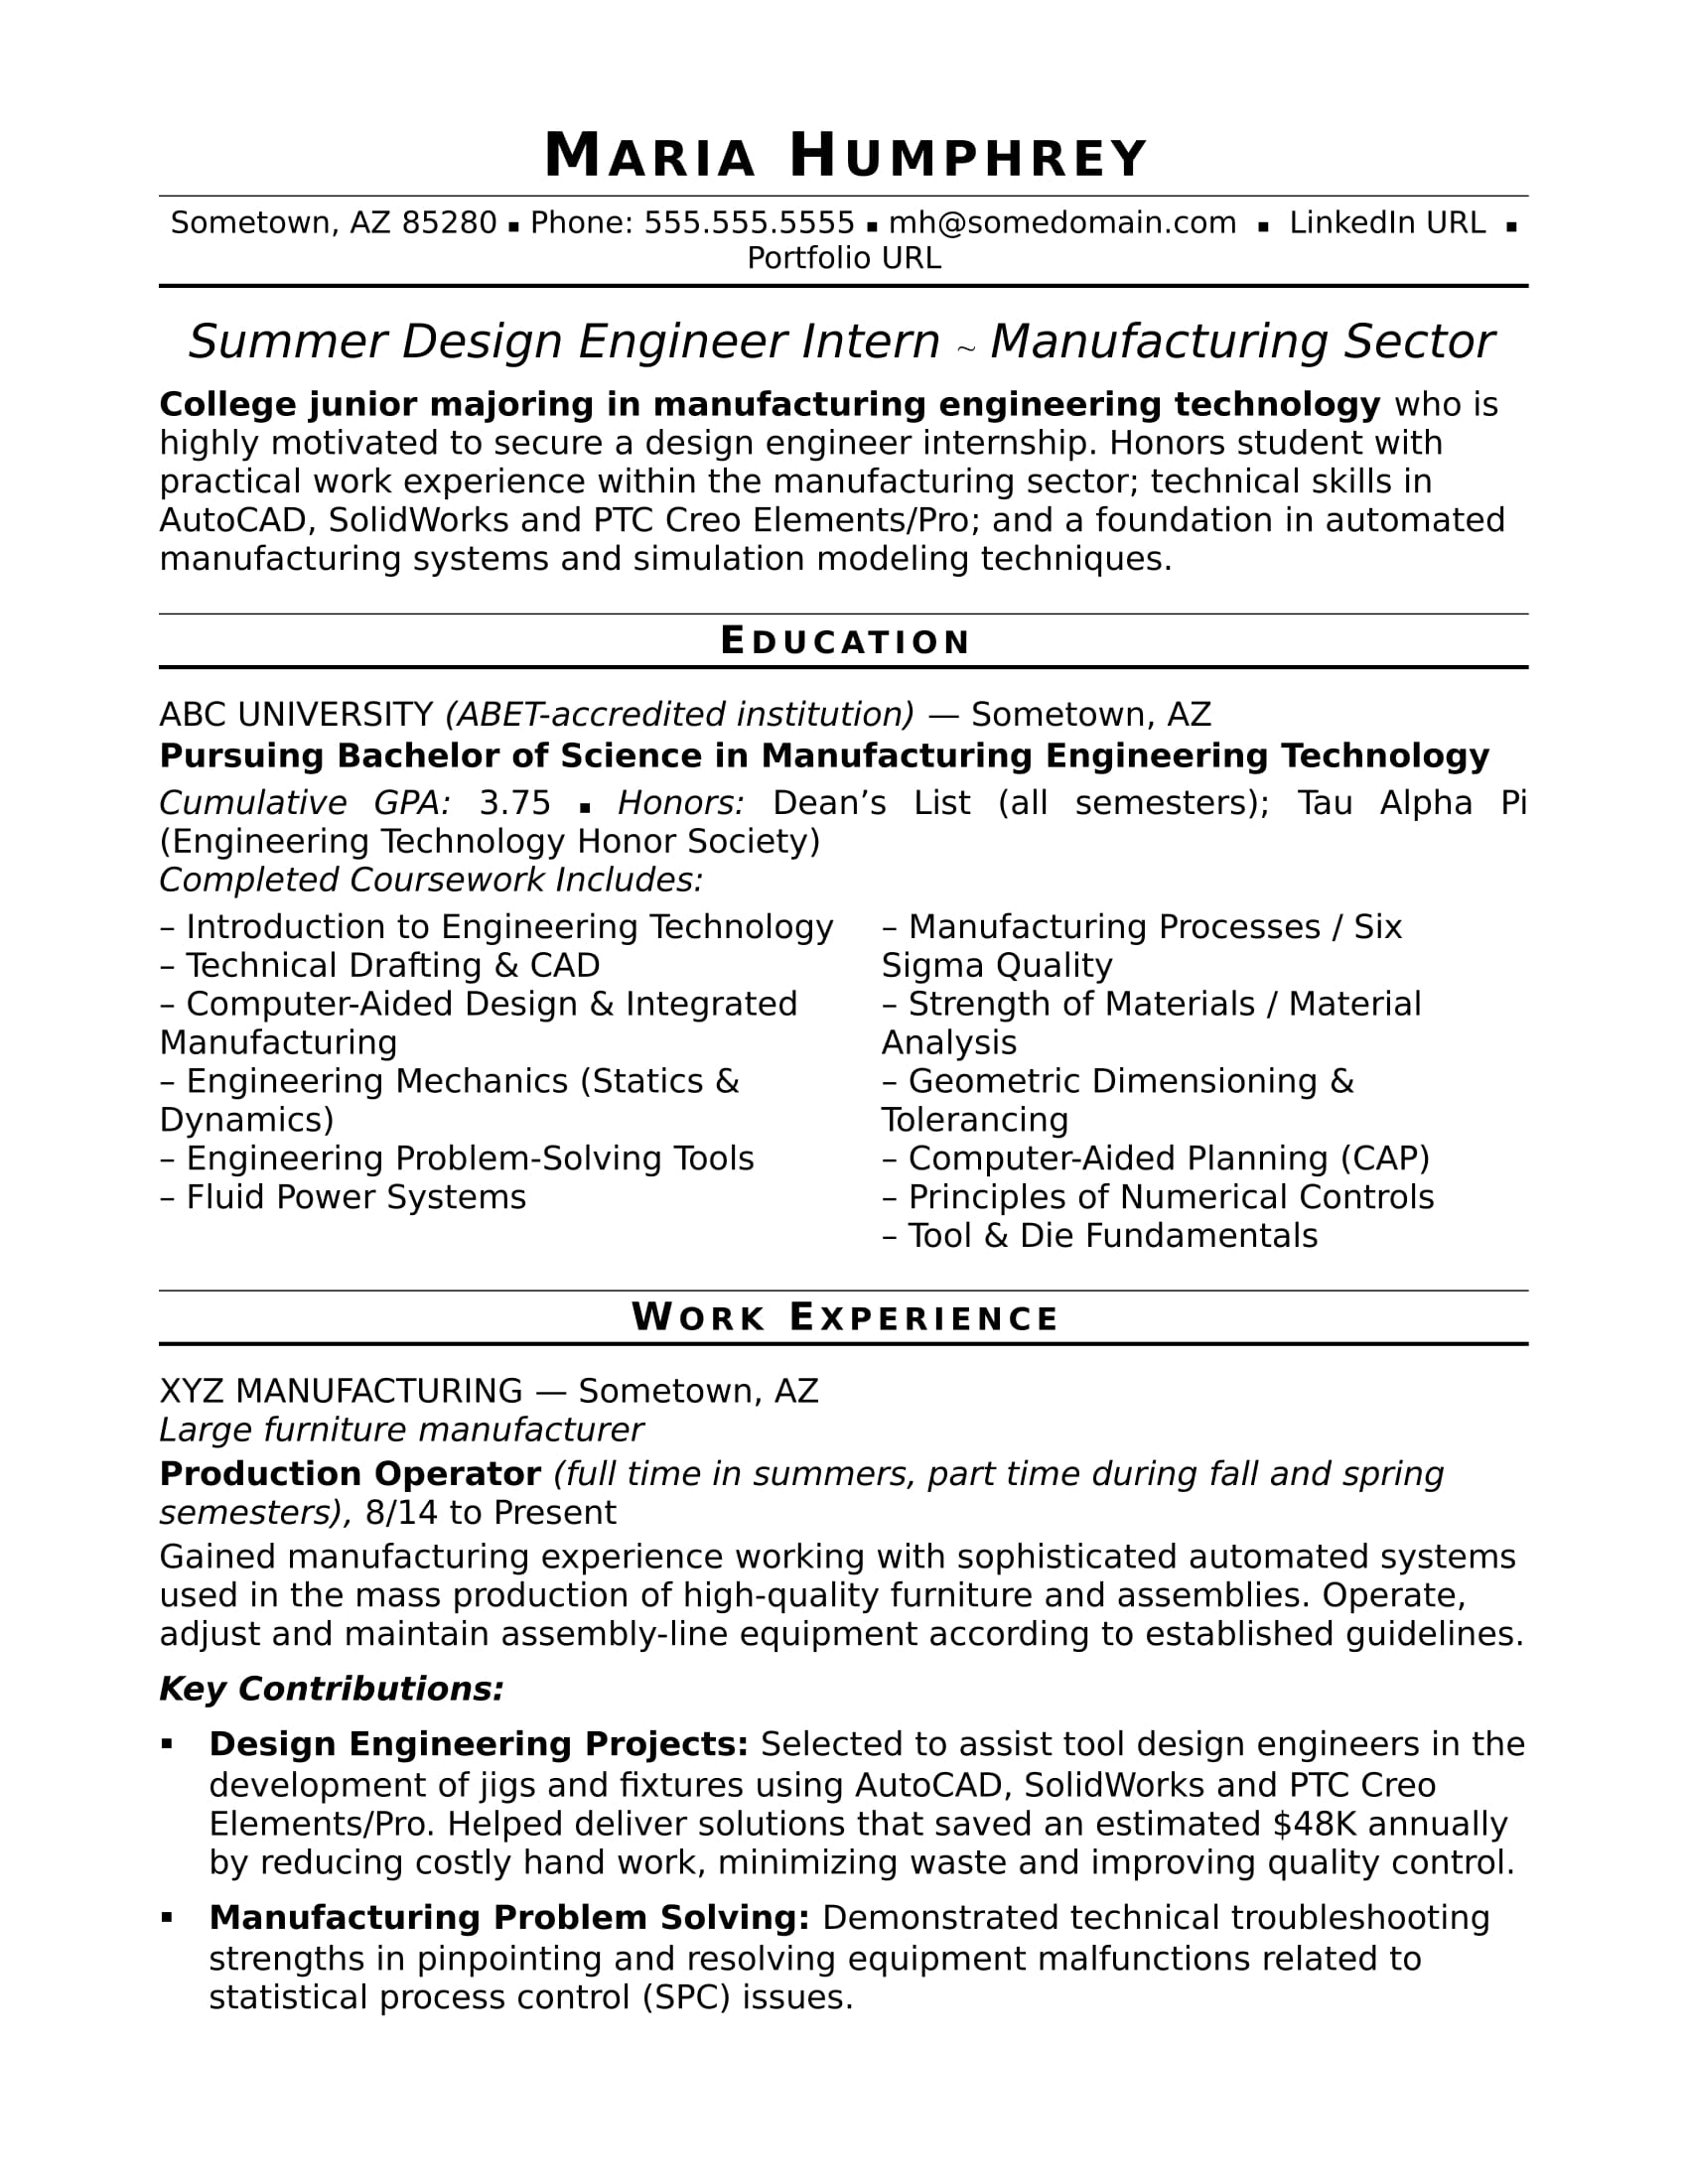 sample resume for an entry level design engineer monster manufacturing marketing Resume Manufacturing Engineer Resume